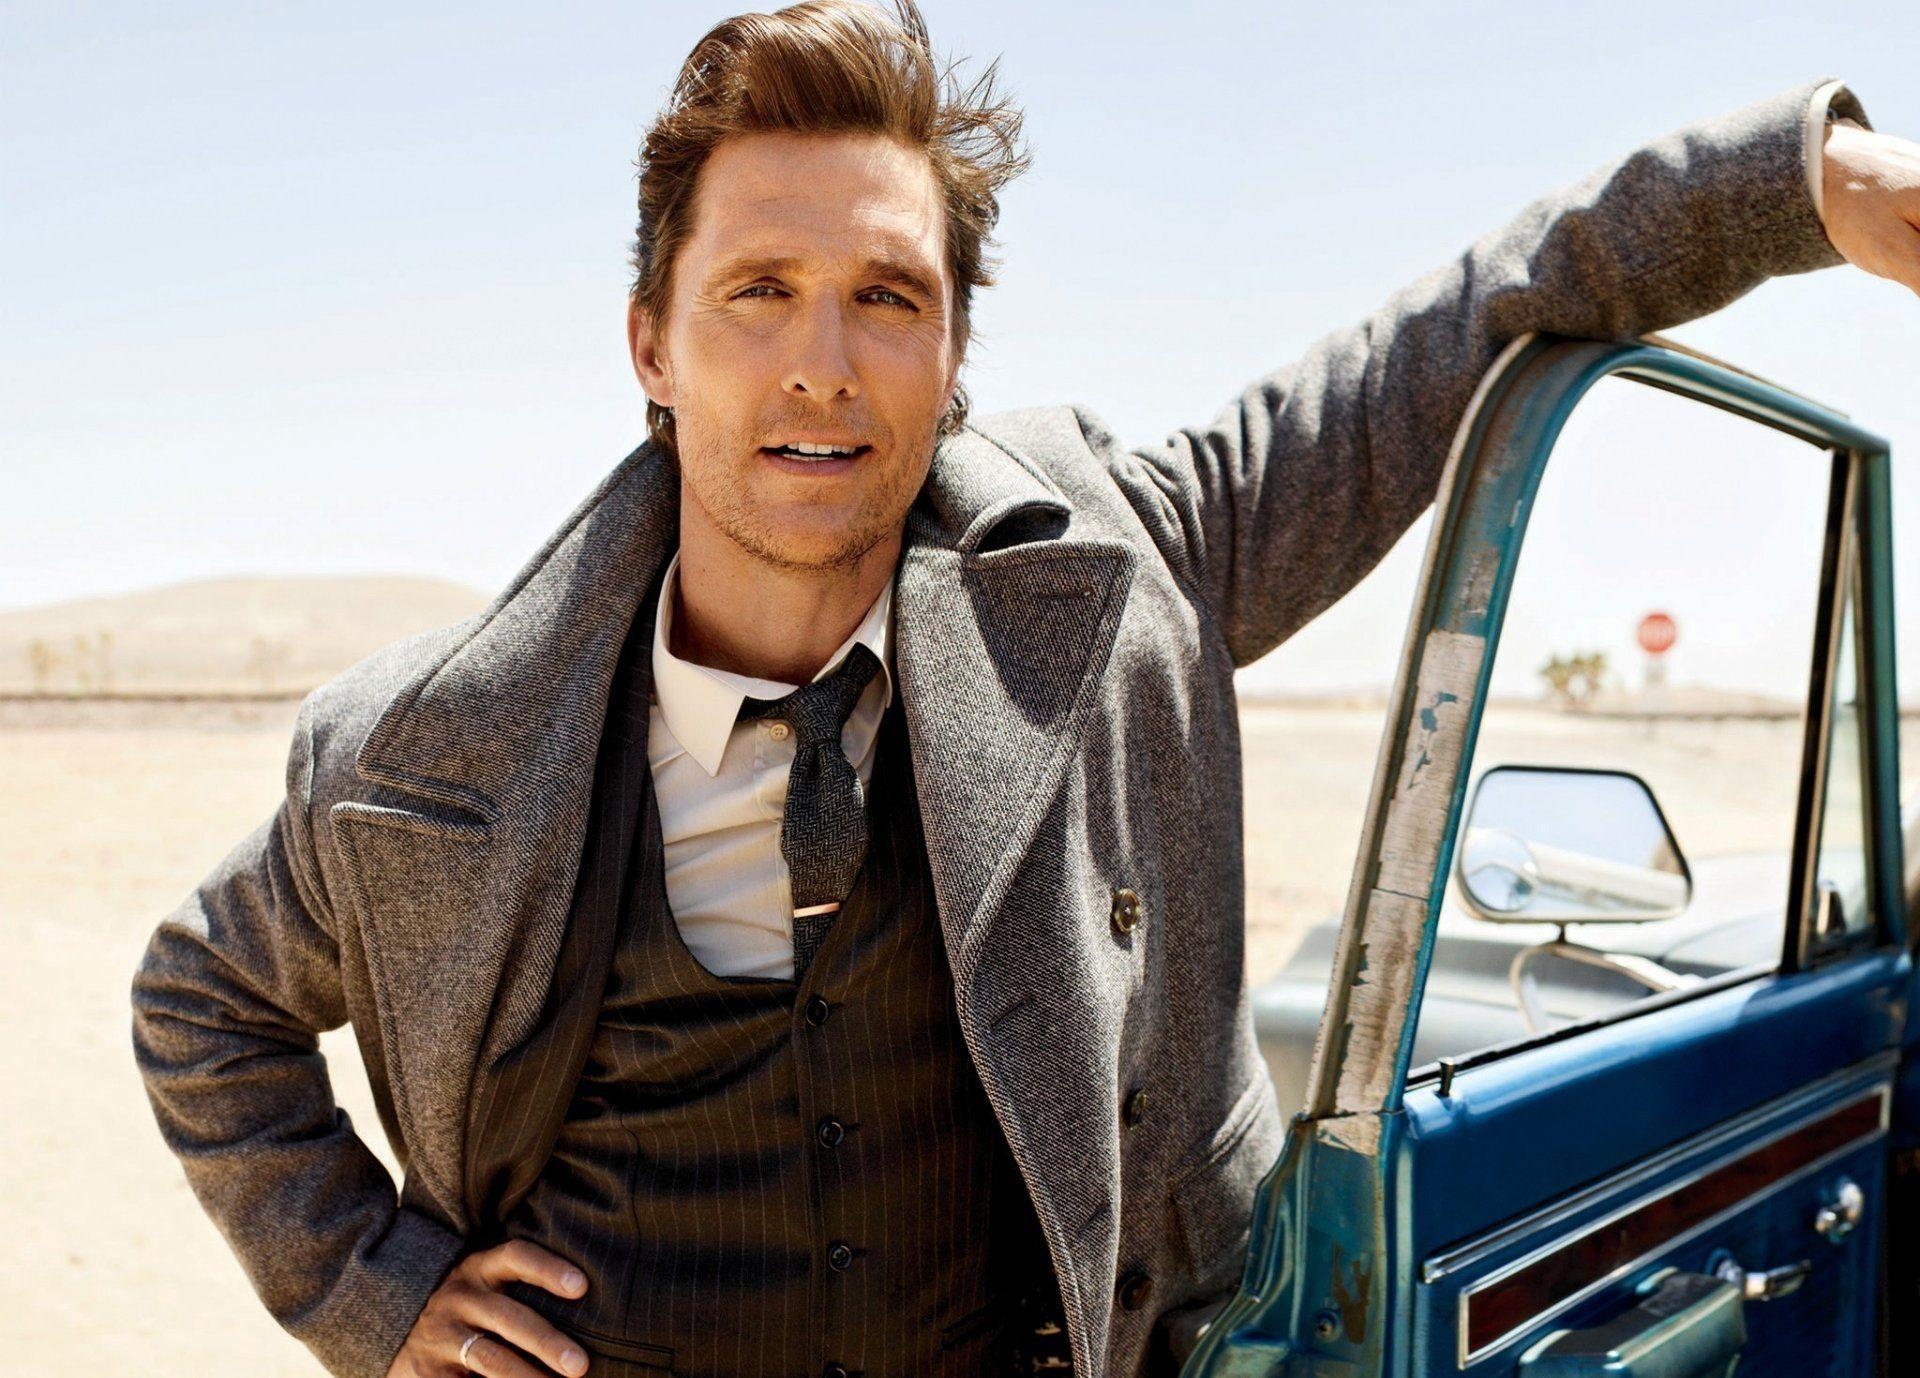 Matthew McConaughey Wallpapers Pictures 56138 1920x1378 px